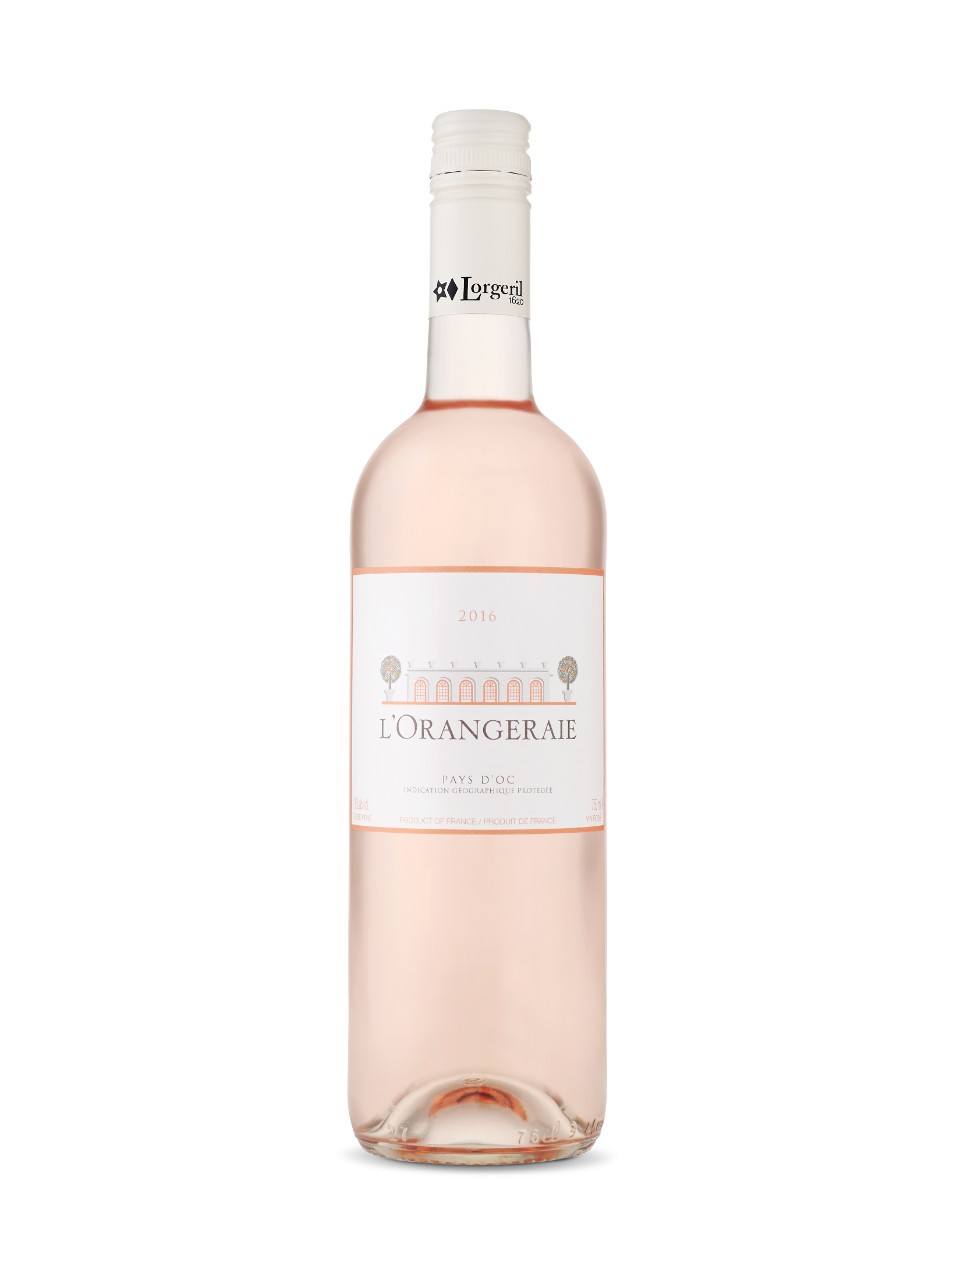 L'Orangeraie Rose Pays D'OC from LCBO